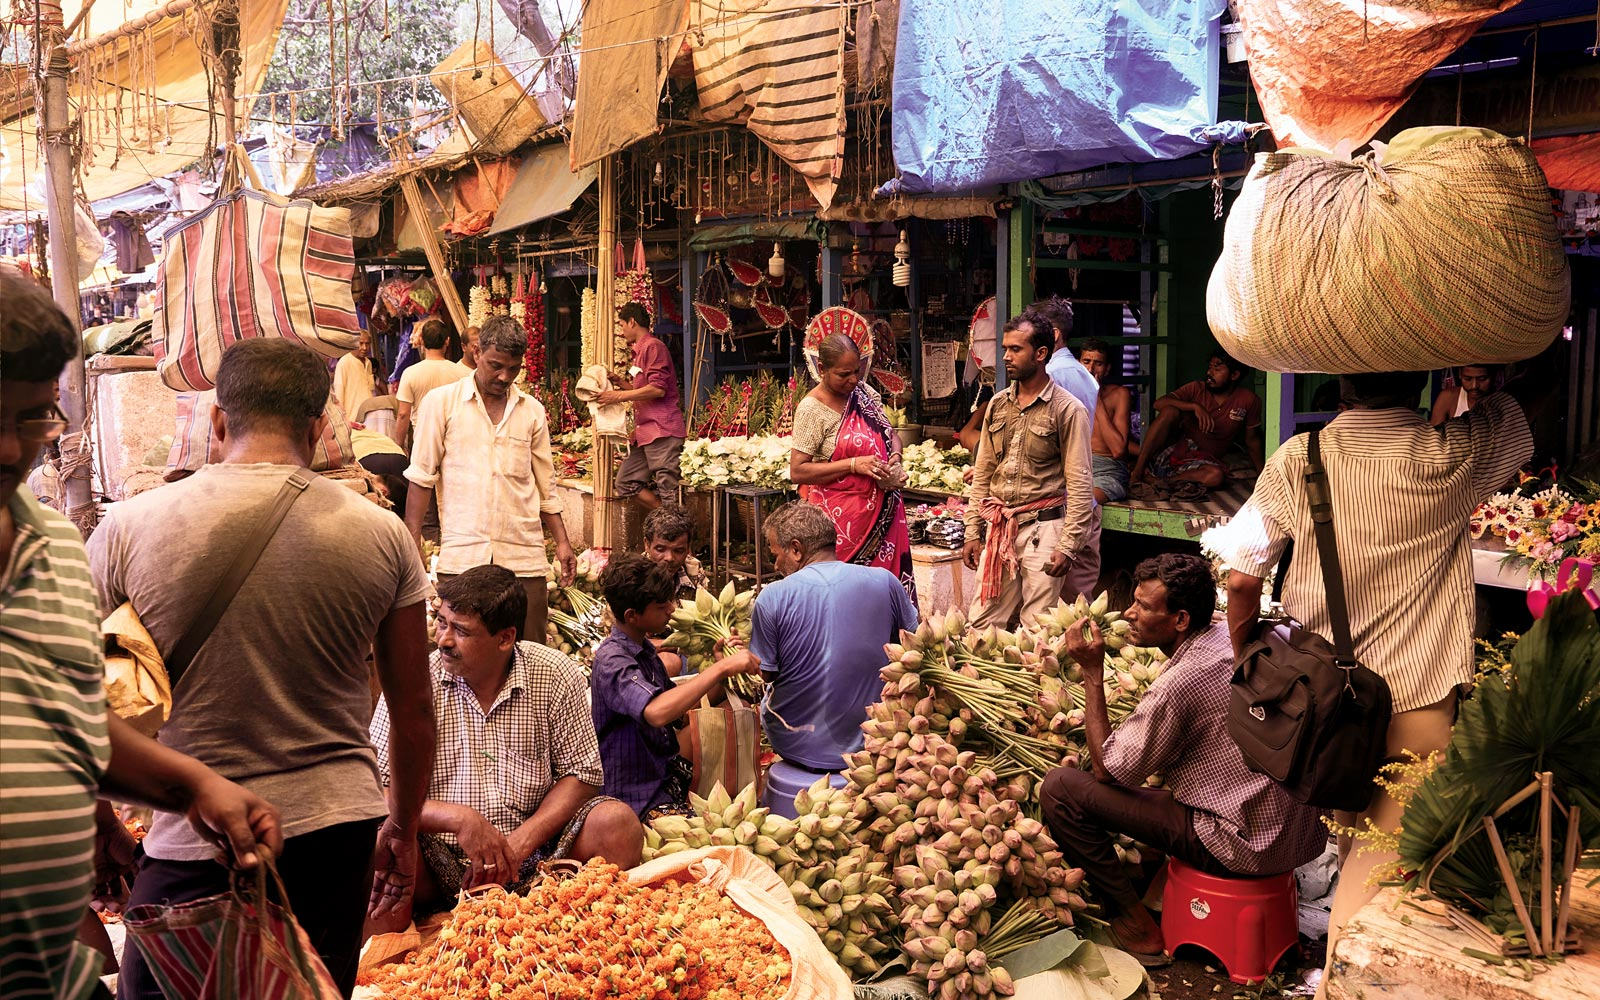 Market scene in Kolkata, India